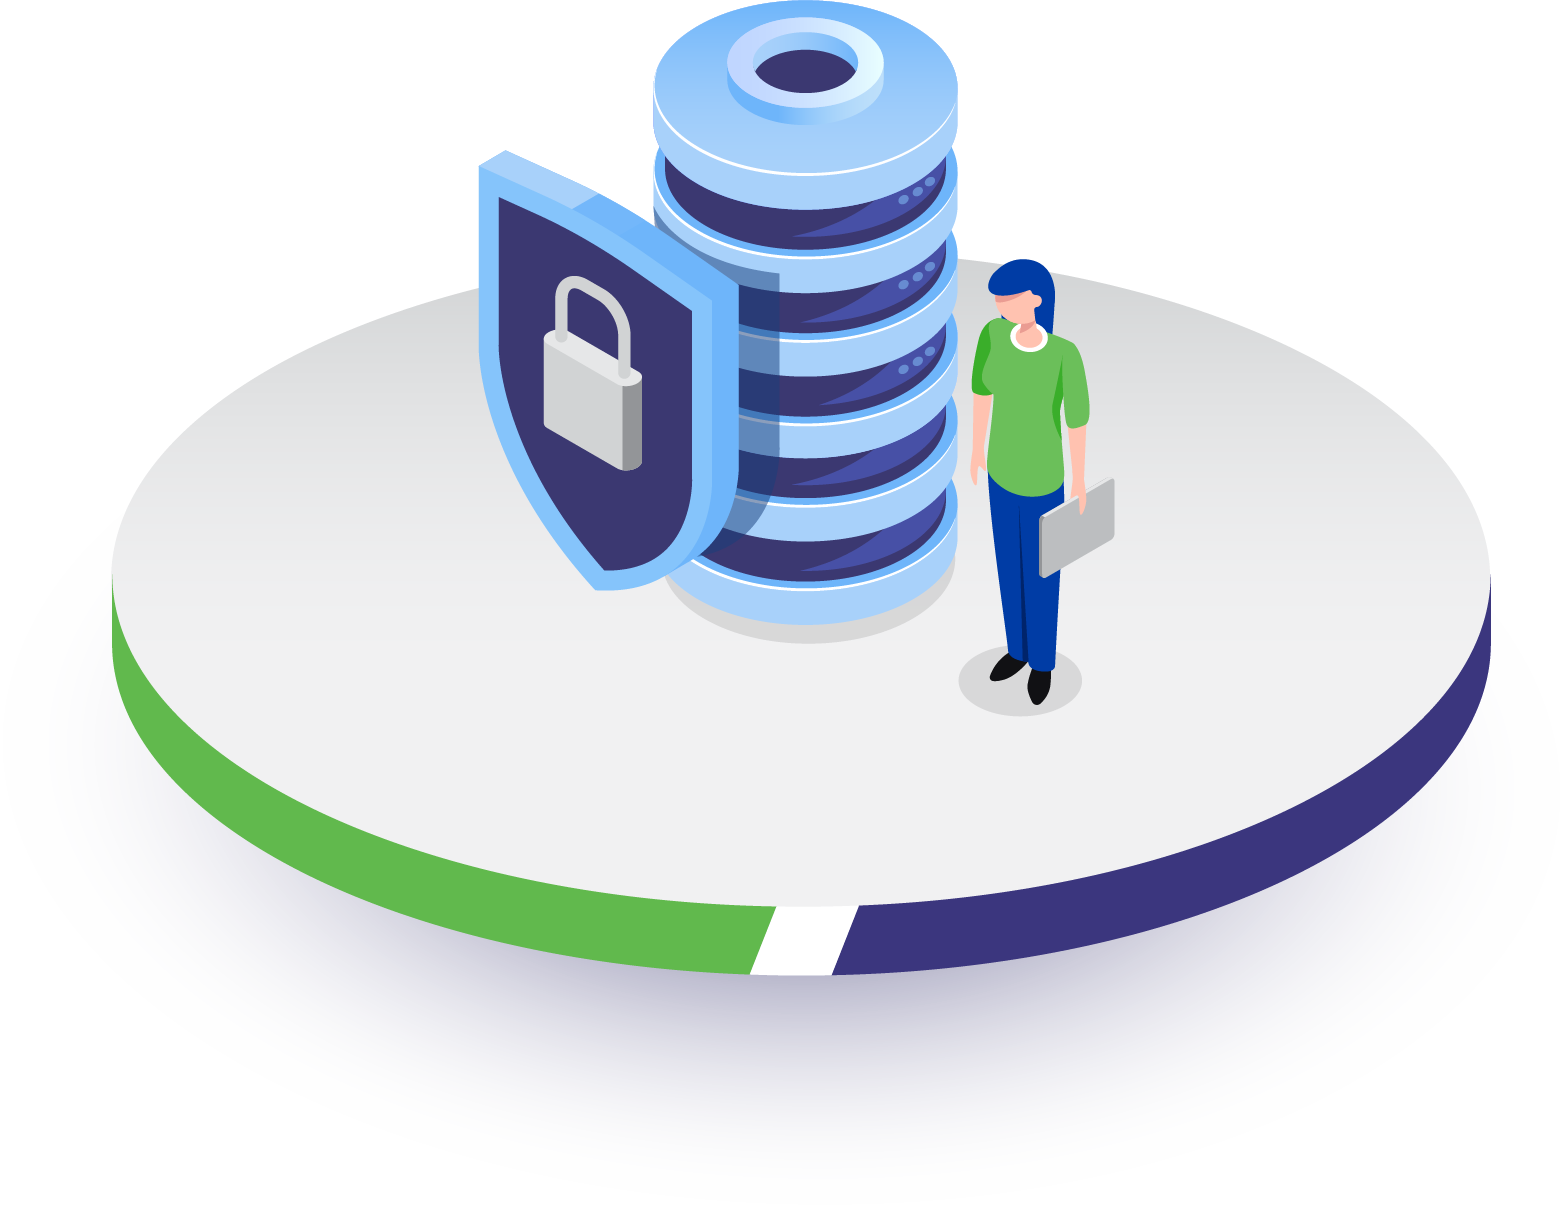 single_database_pillar